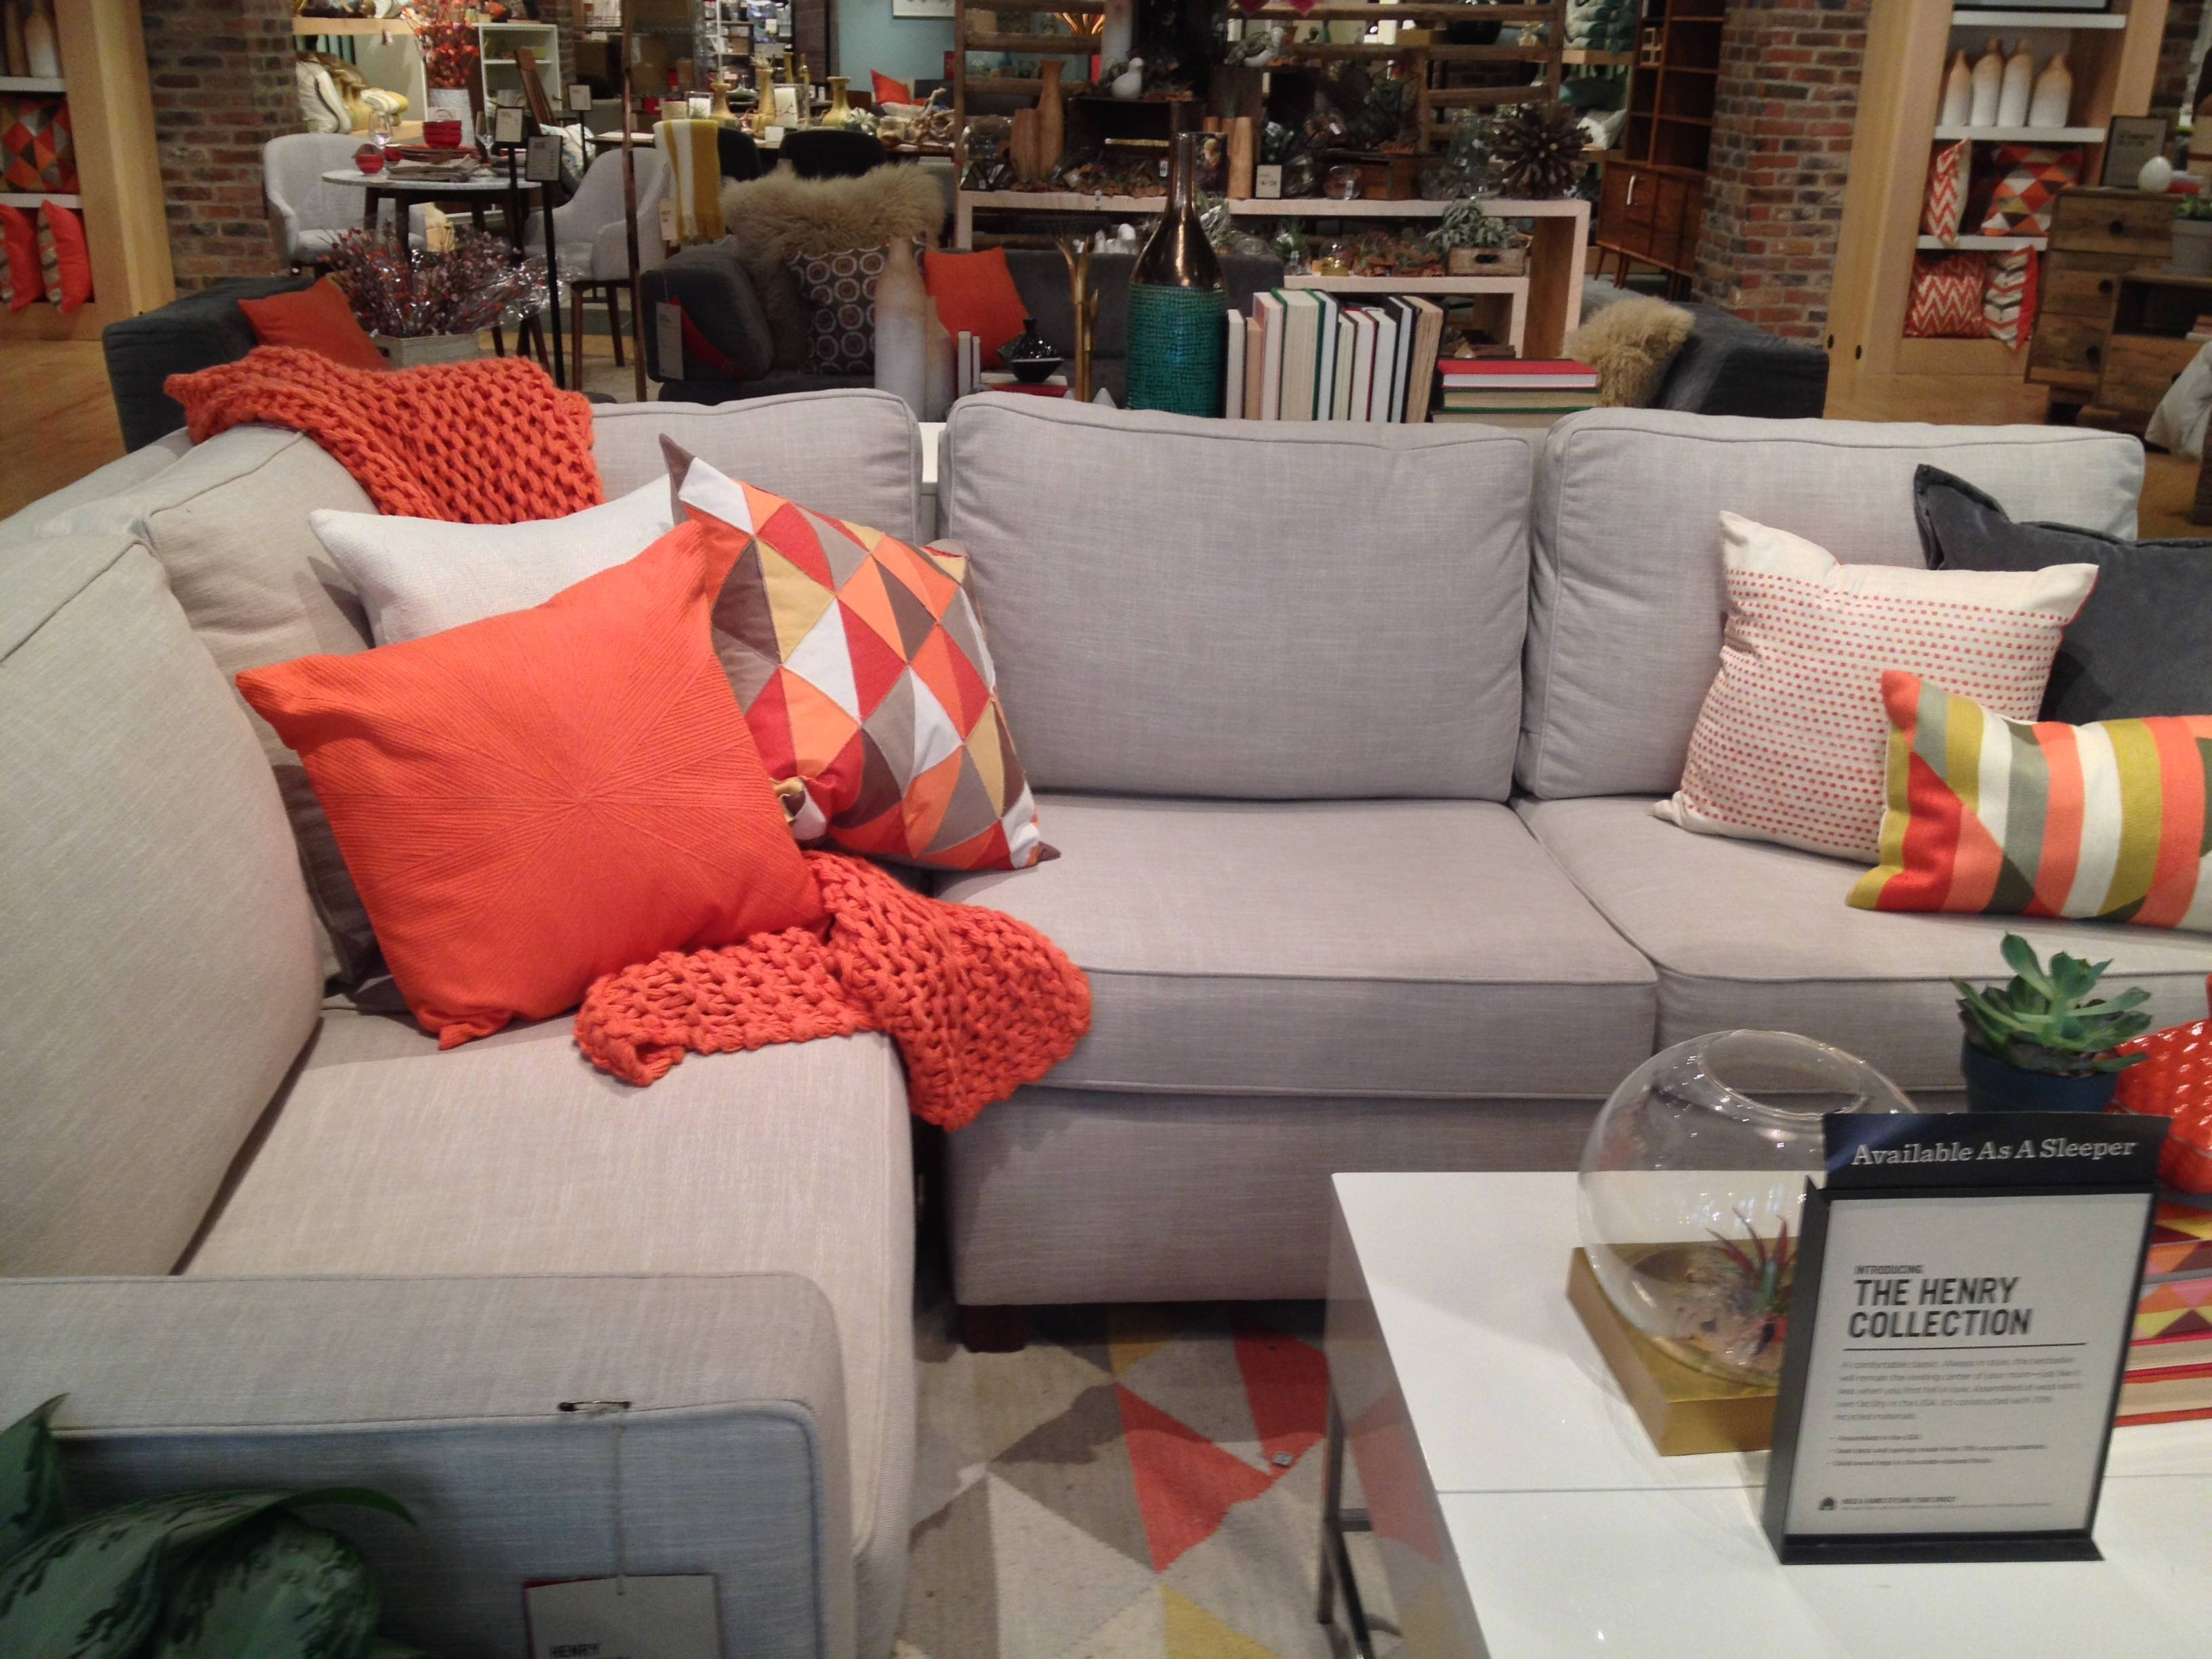 Furniture: Exciting Sectional Sofas Costco For Your Family Room for West Elm Sectional Sofa (Image 7 of 30)